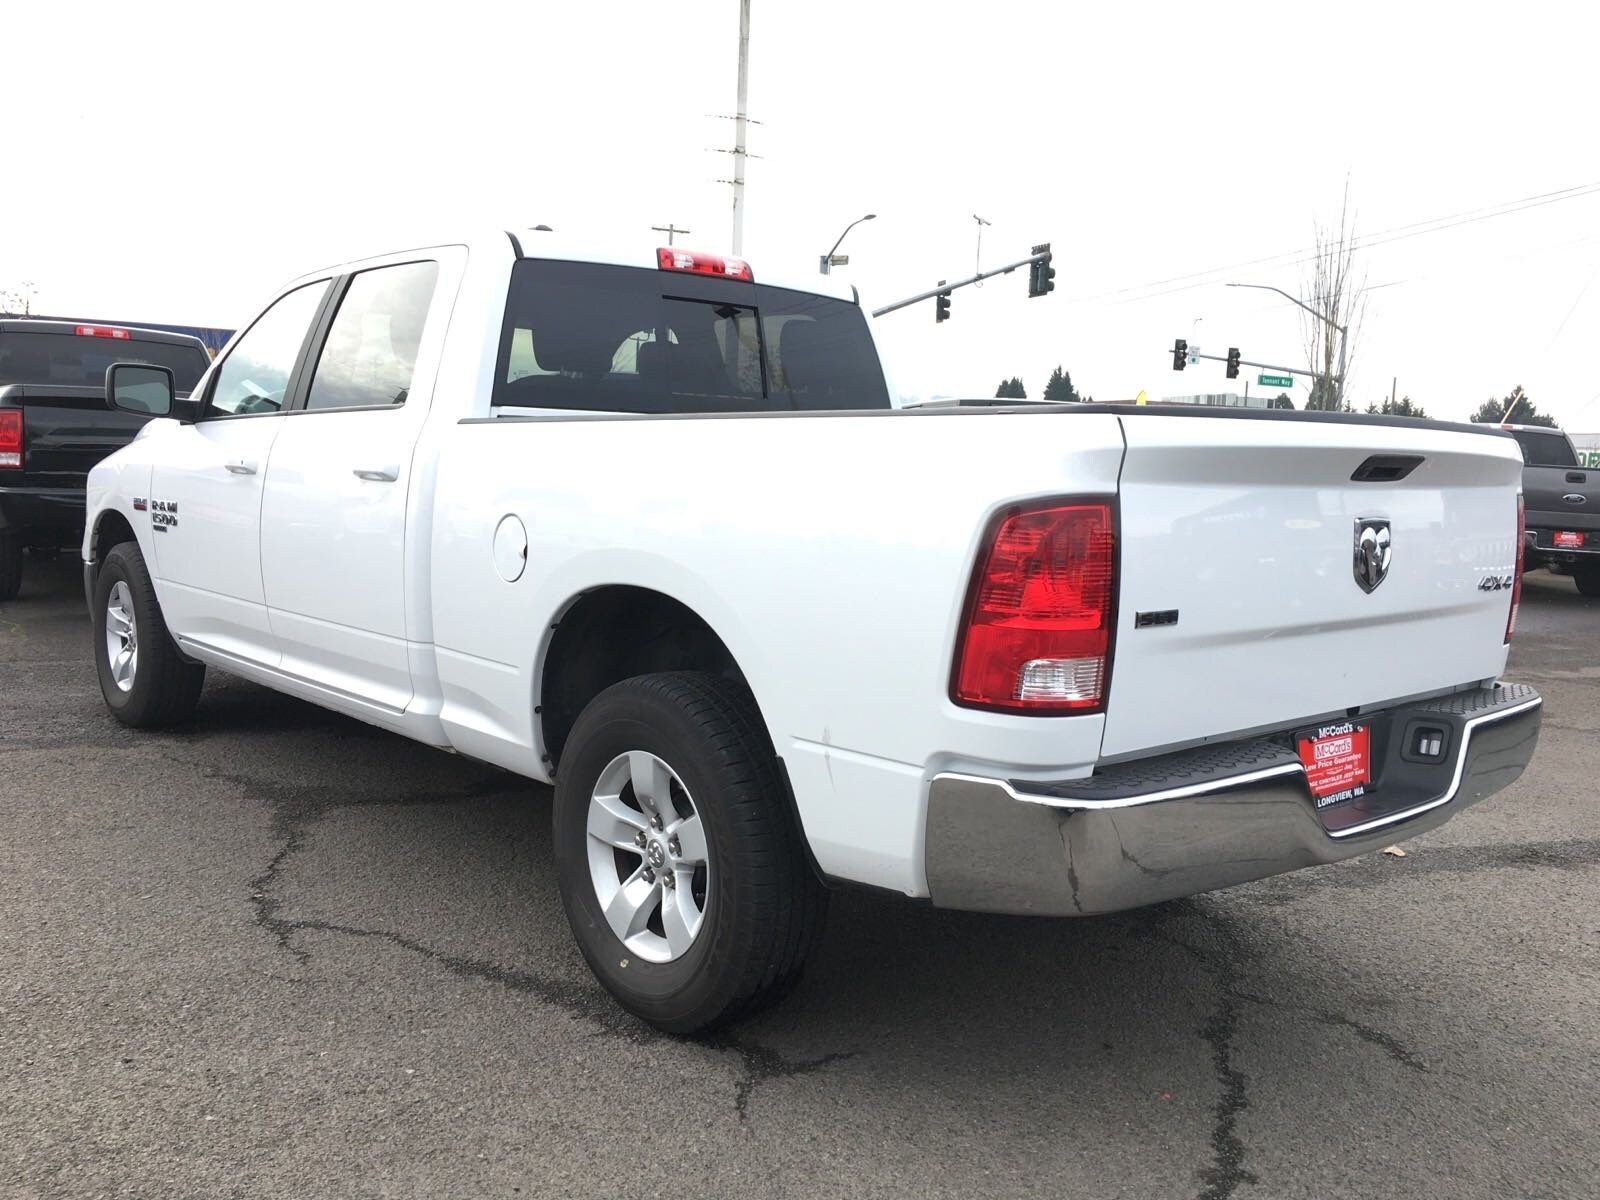 2019 Ram 1500 Crew Cab 4x4, Pickup #B4134 - photo 1